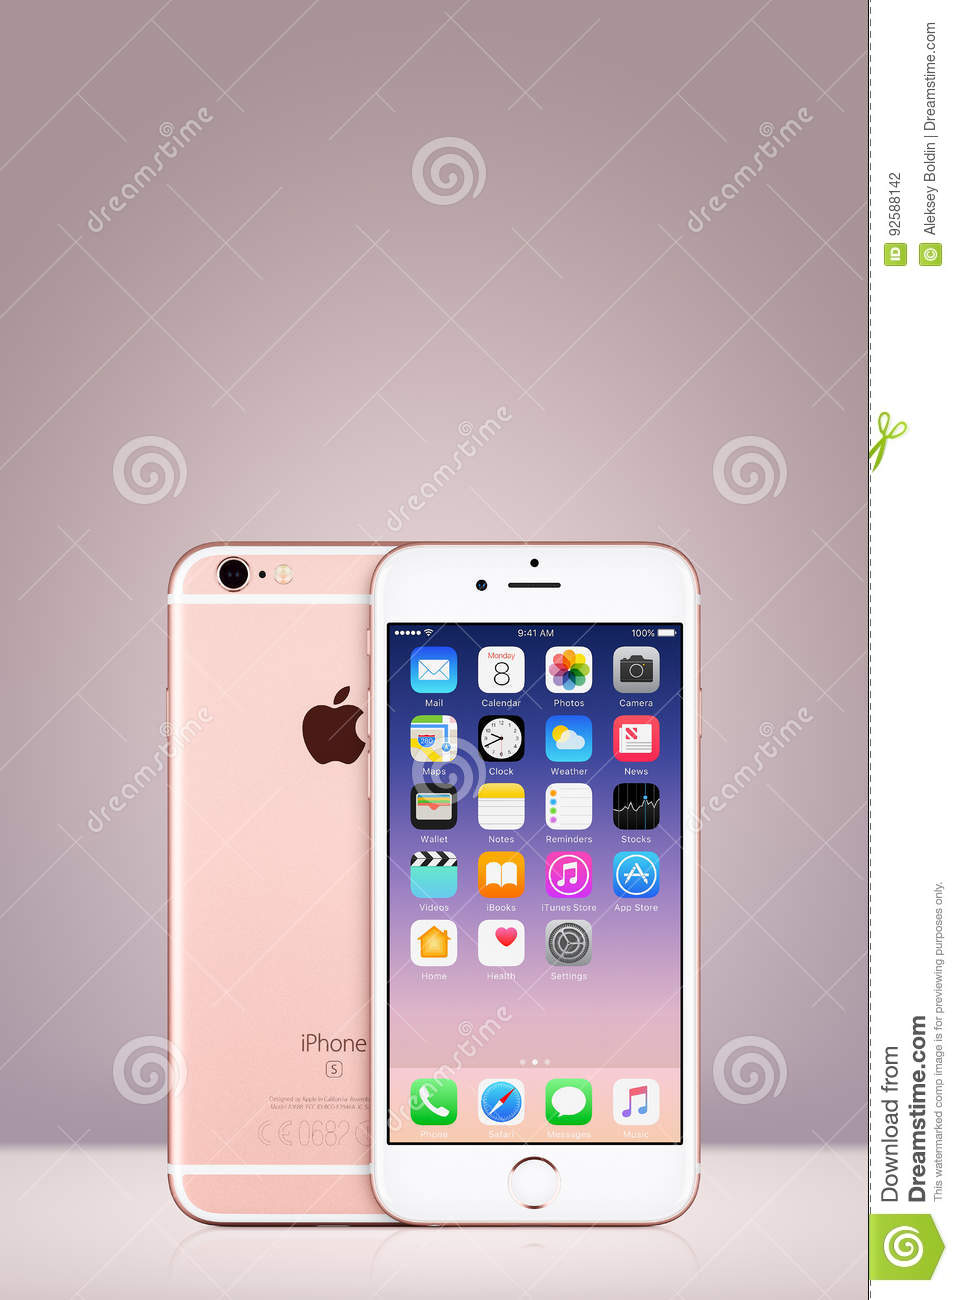 Iphone 7 De Rose Gold Apple Avec Ios 10 Sur L Ecran Sur Le